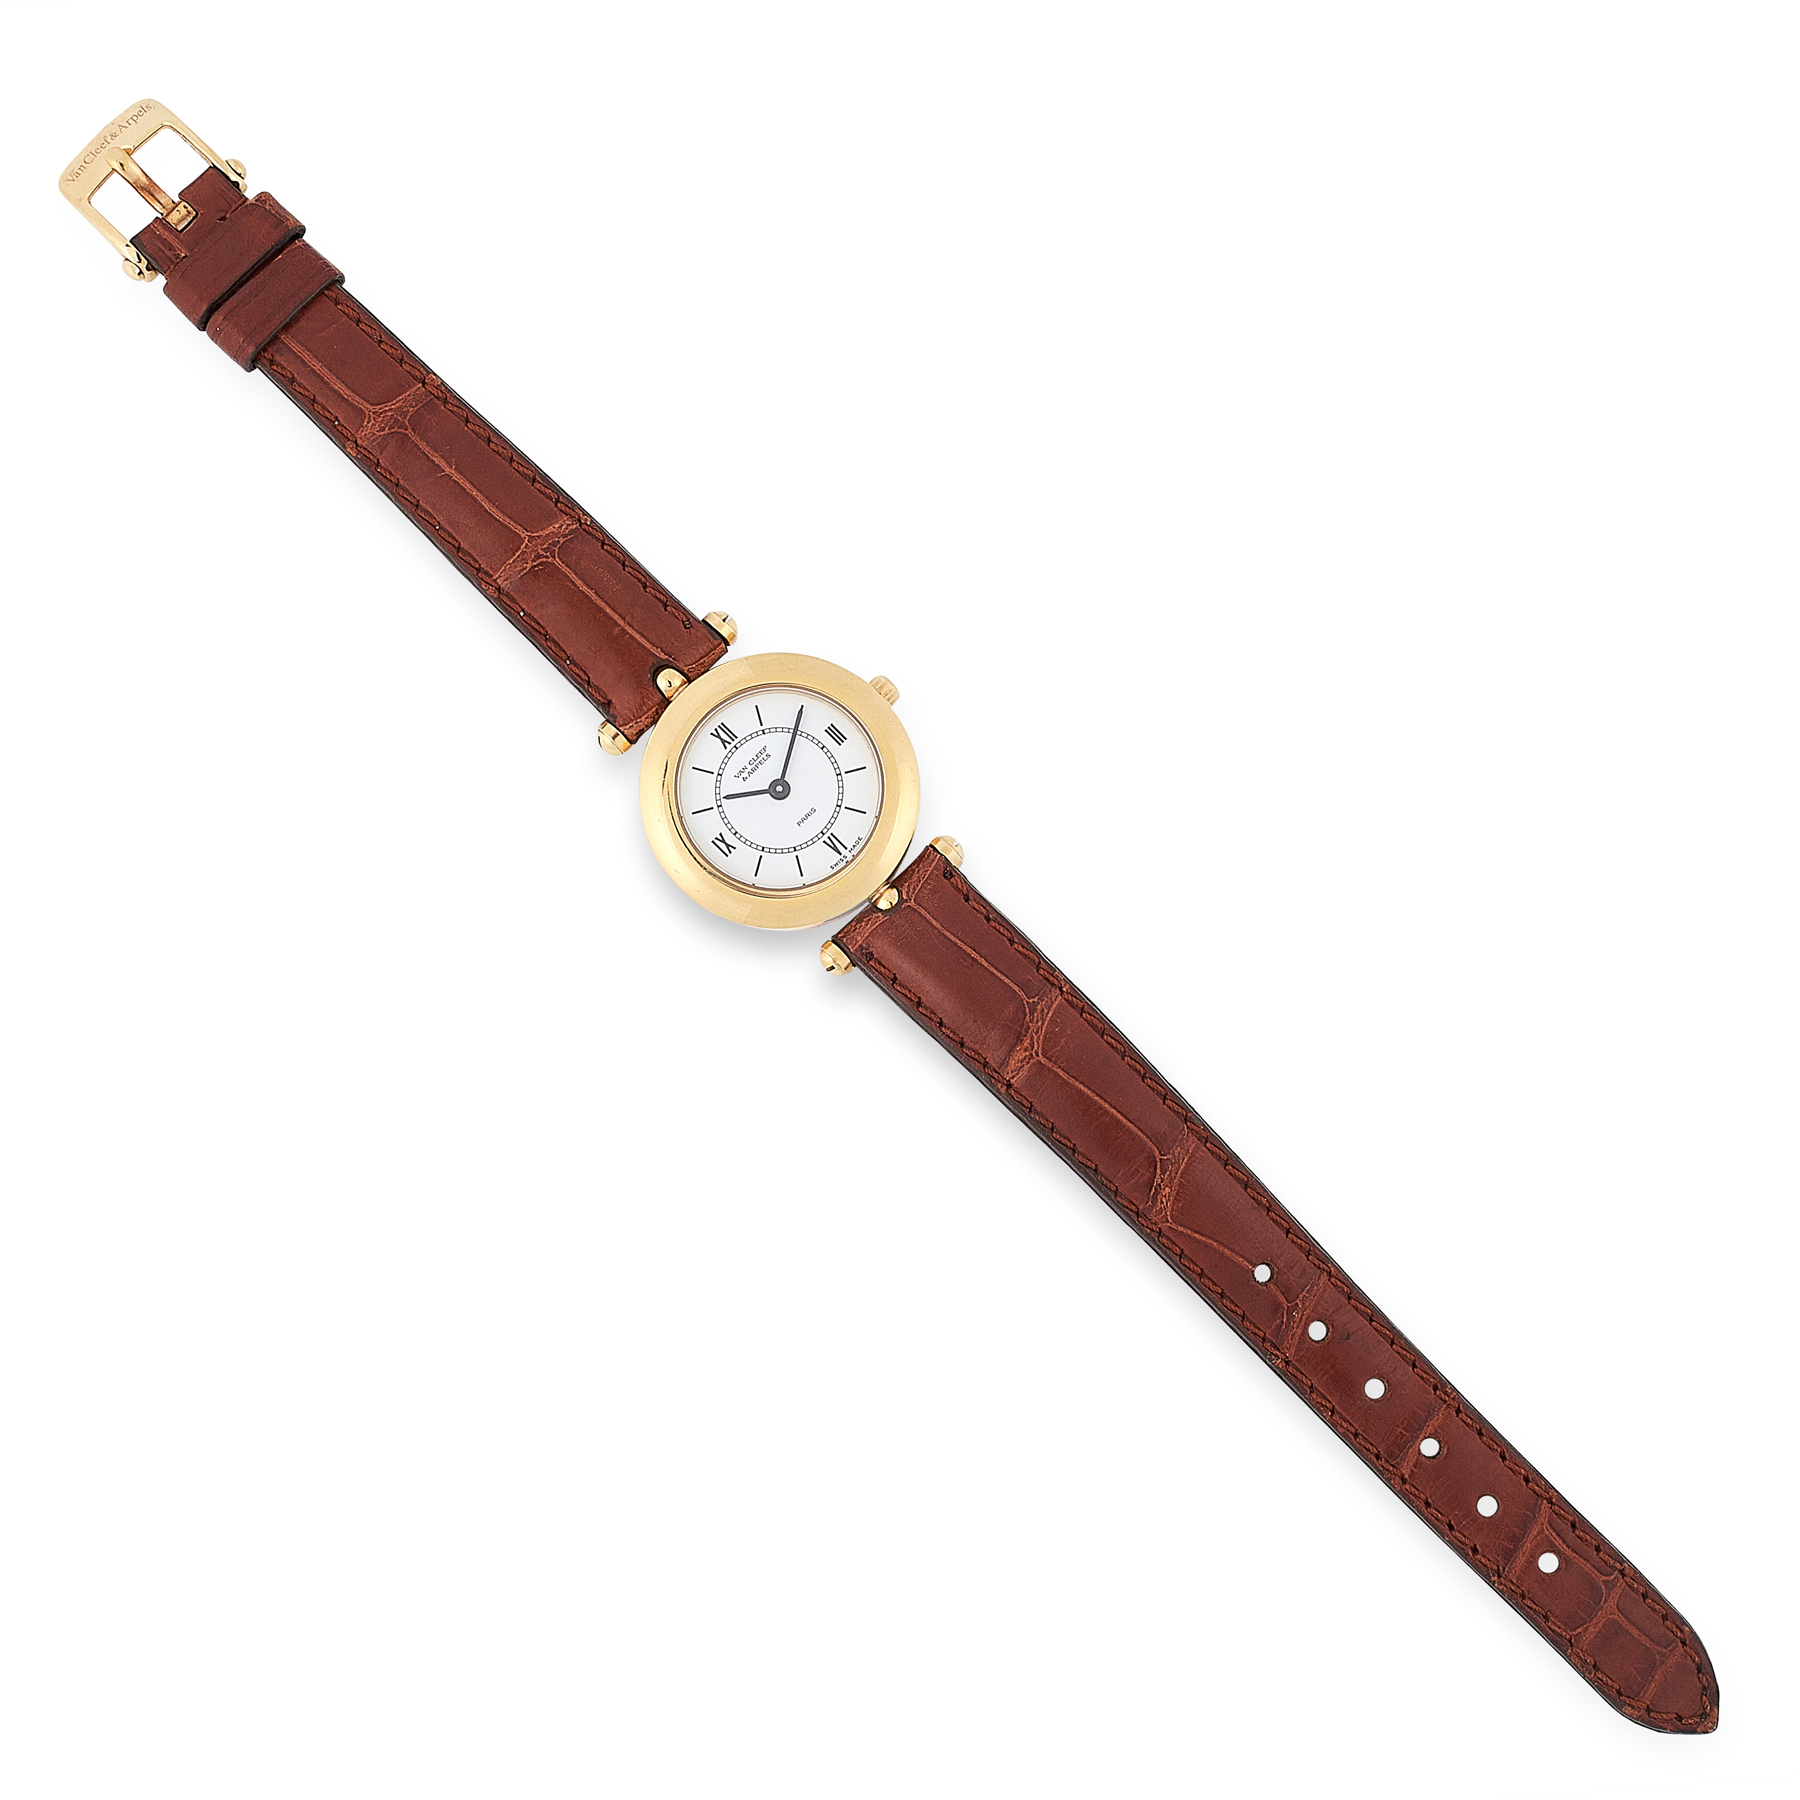 A VINTAGE LADIES WRIST WATCH, VAN CLEEF & ARPELS in 18ct yellow gold, the gold case with plain